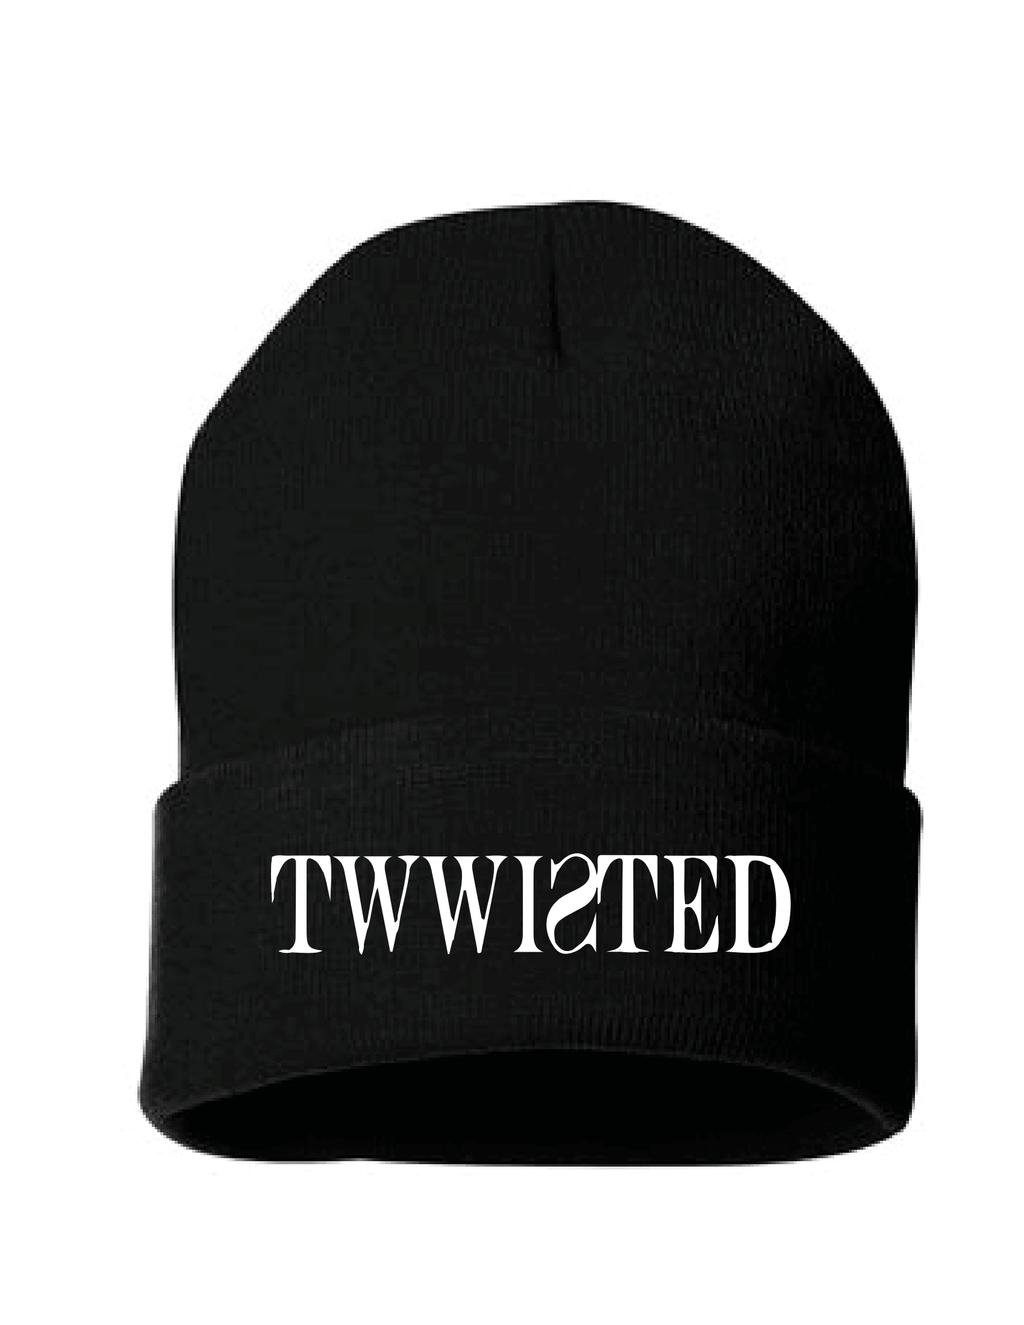 Twwisted Beanie - Twwisted